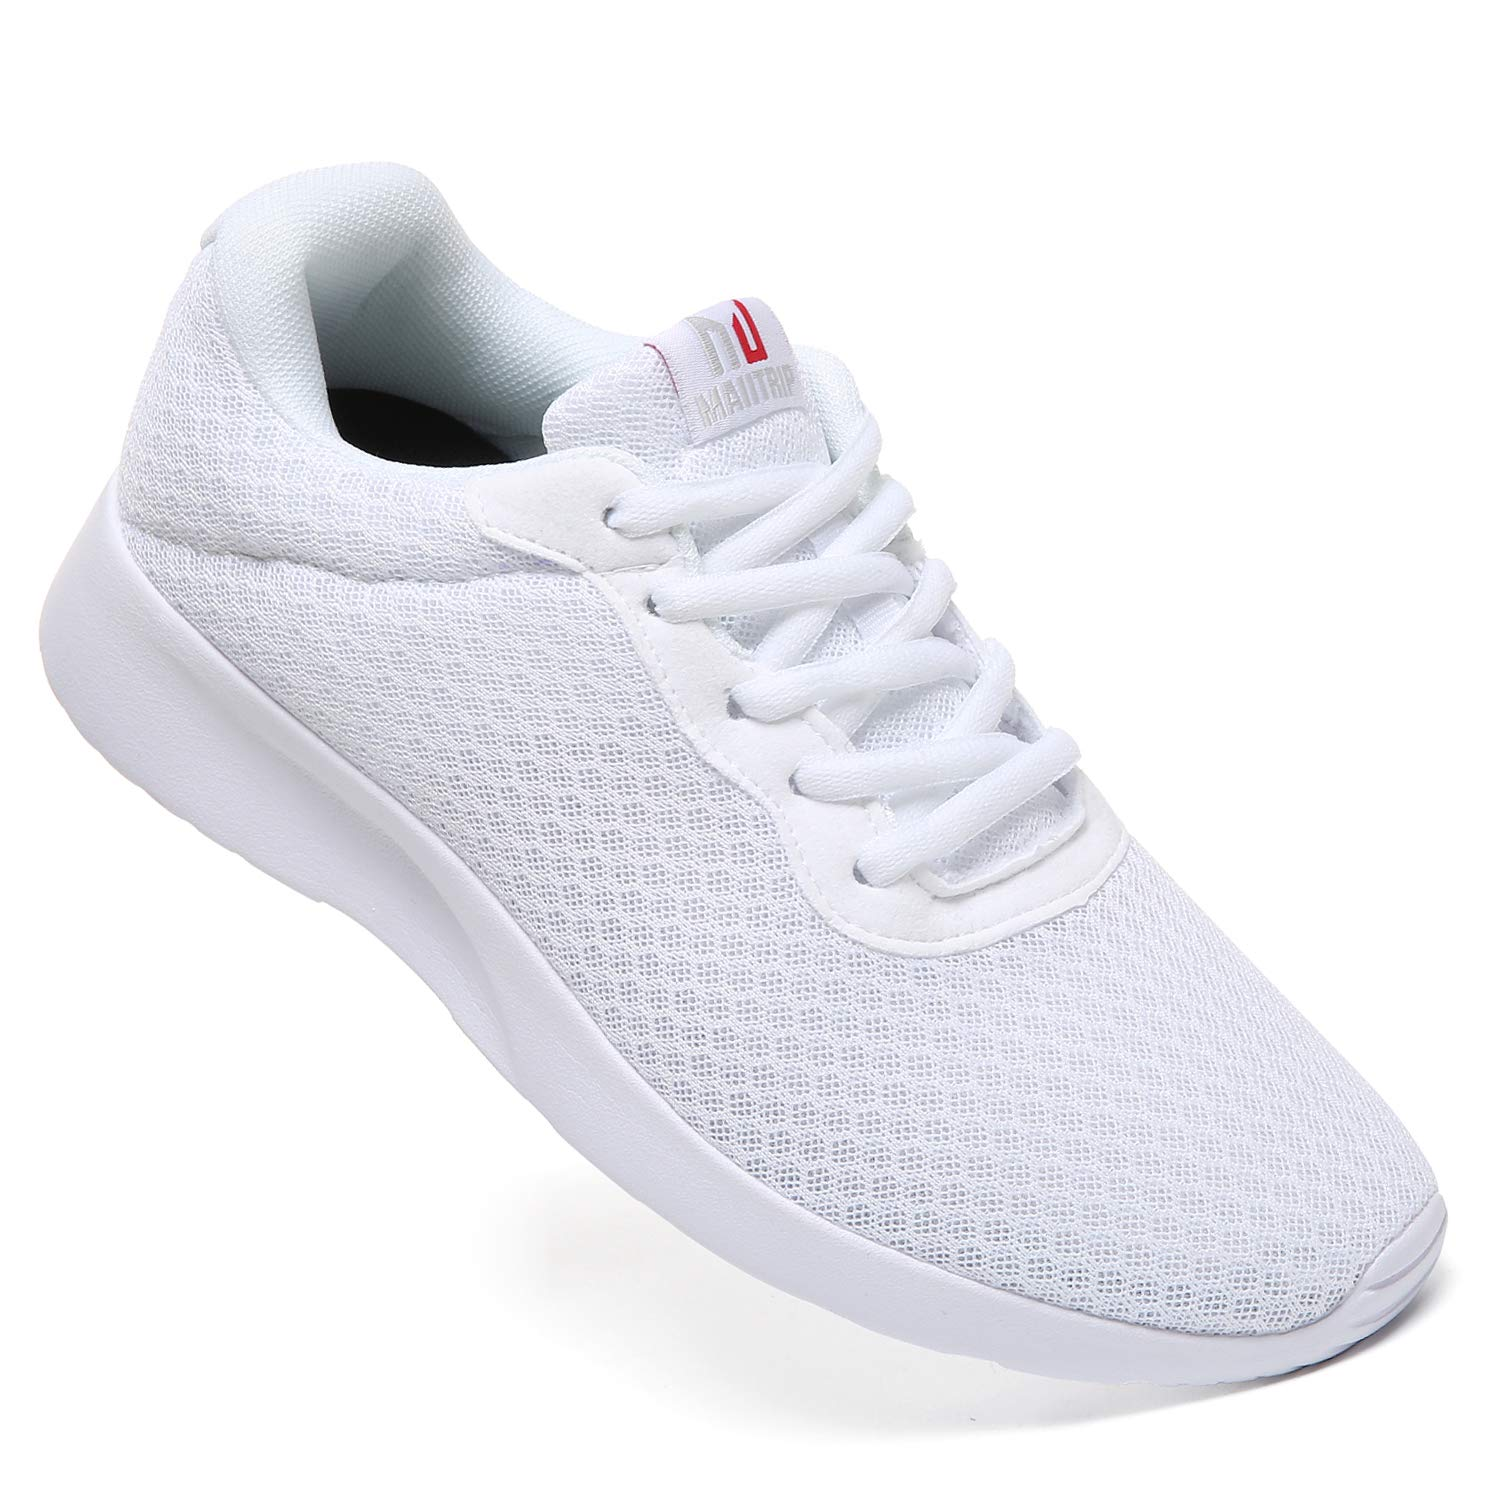 MAIITRIP Mens Gym Shoes,Athletic Running Shoes,Lightweight Breathable Mesh Casual Tennis Sports Workout Walking Sneakers,All White,Size 7